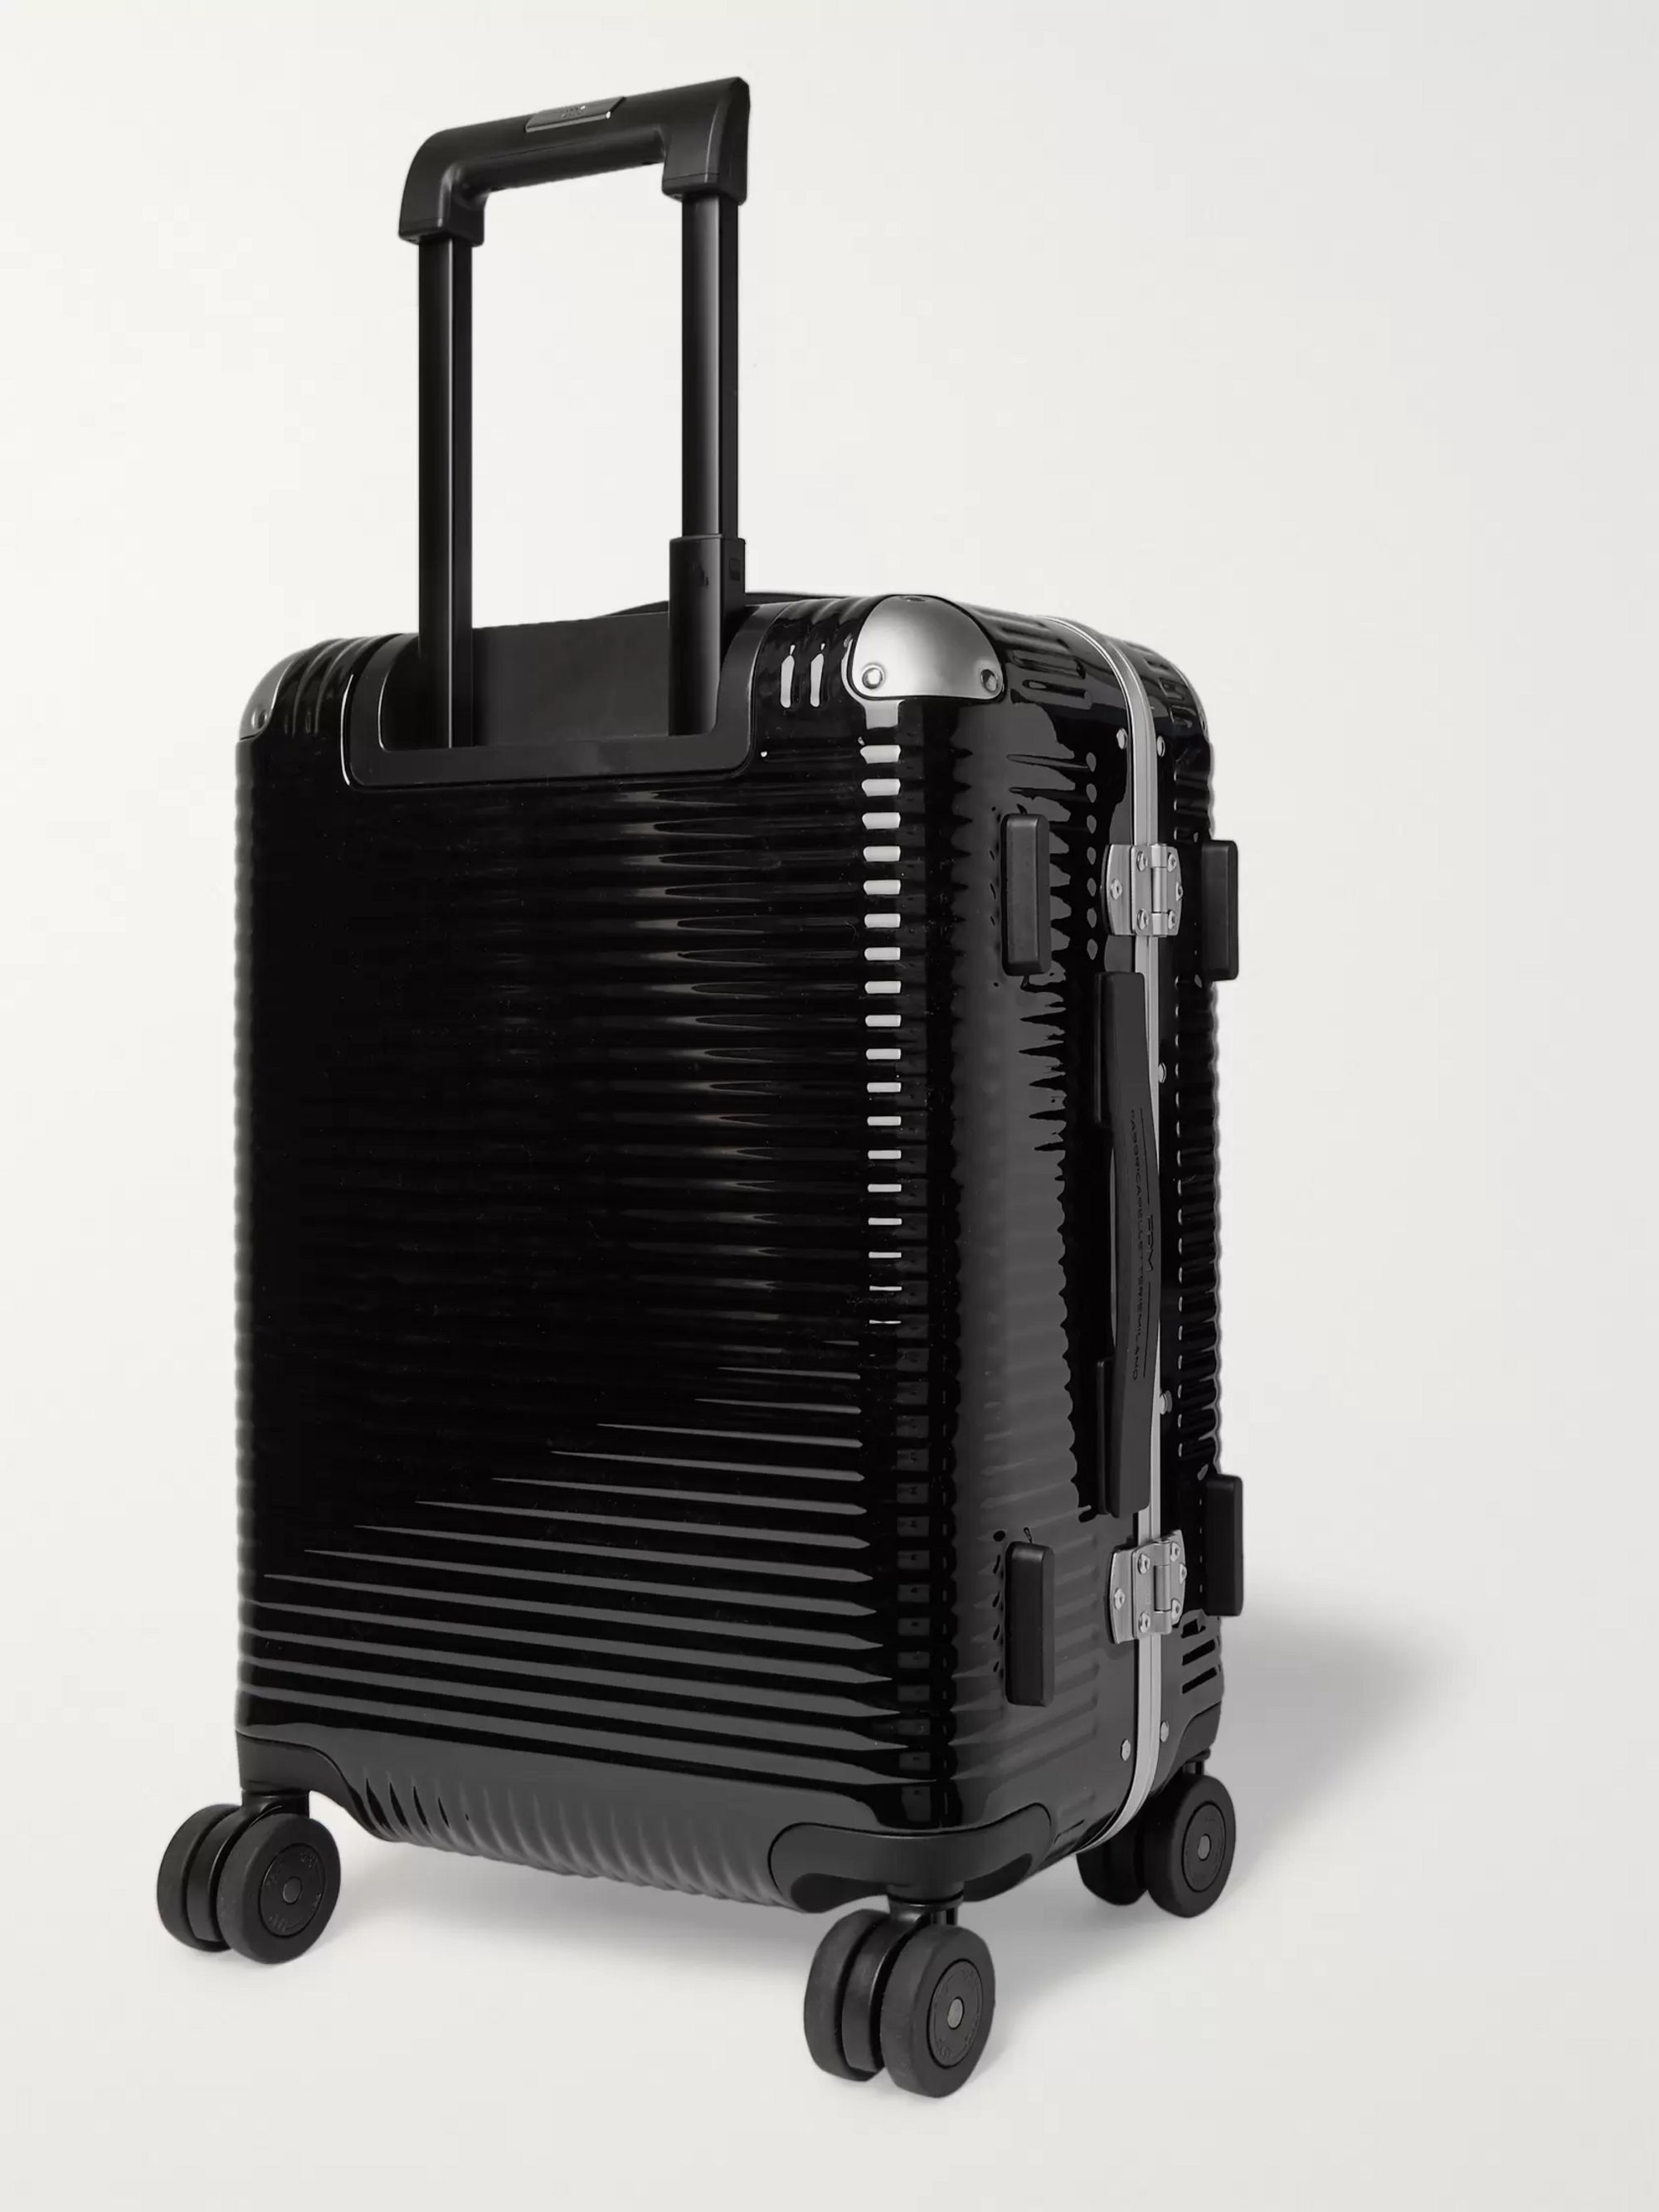 Fabbrica Pelletterie Milano Bank Light Spinner 53cm Polycarbonate Carry-On Suitcase